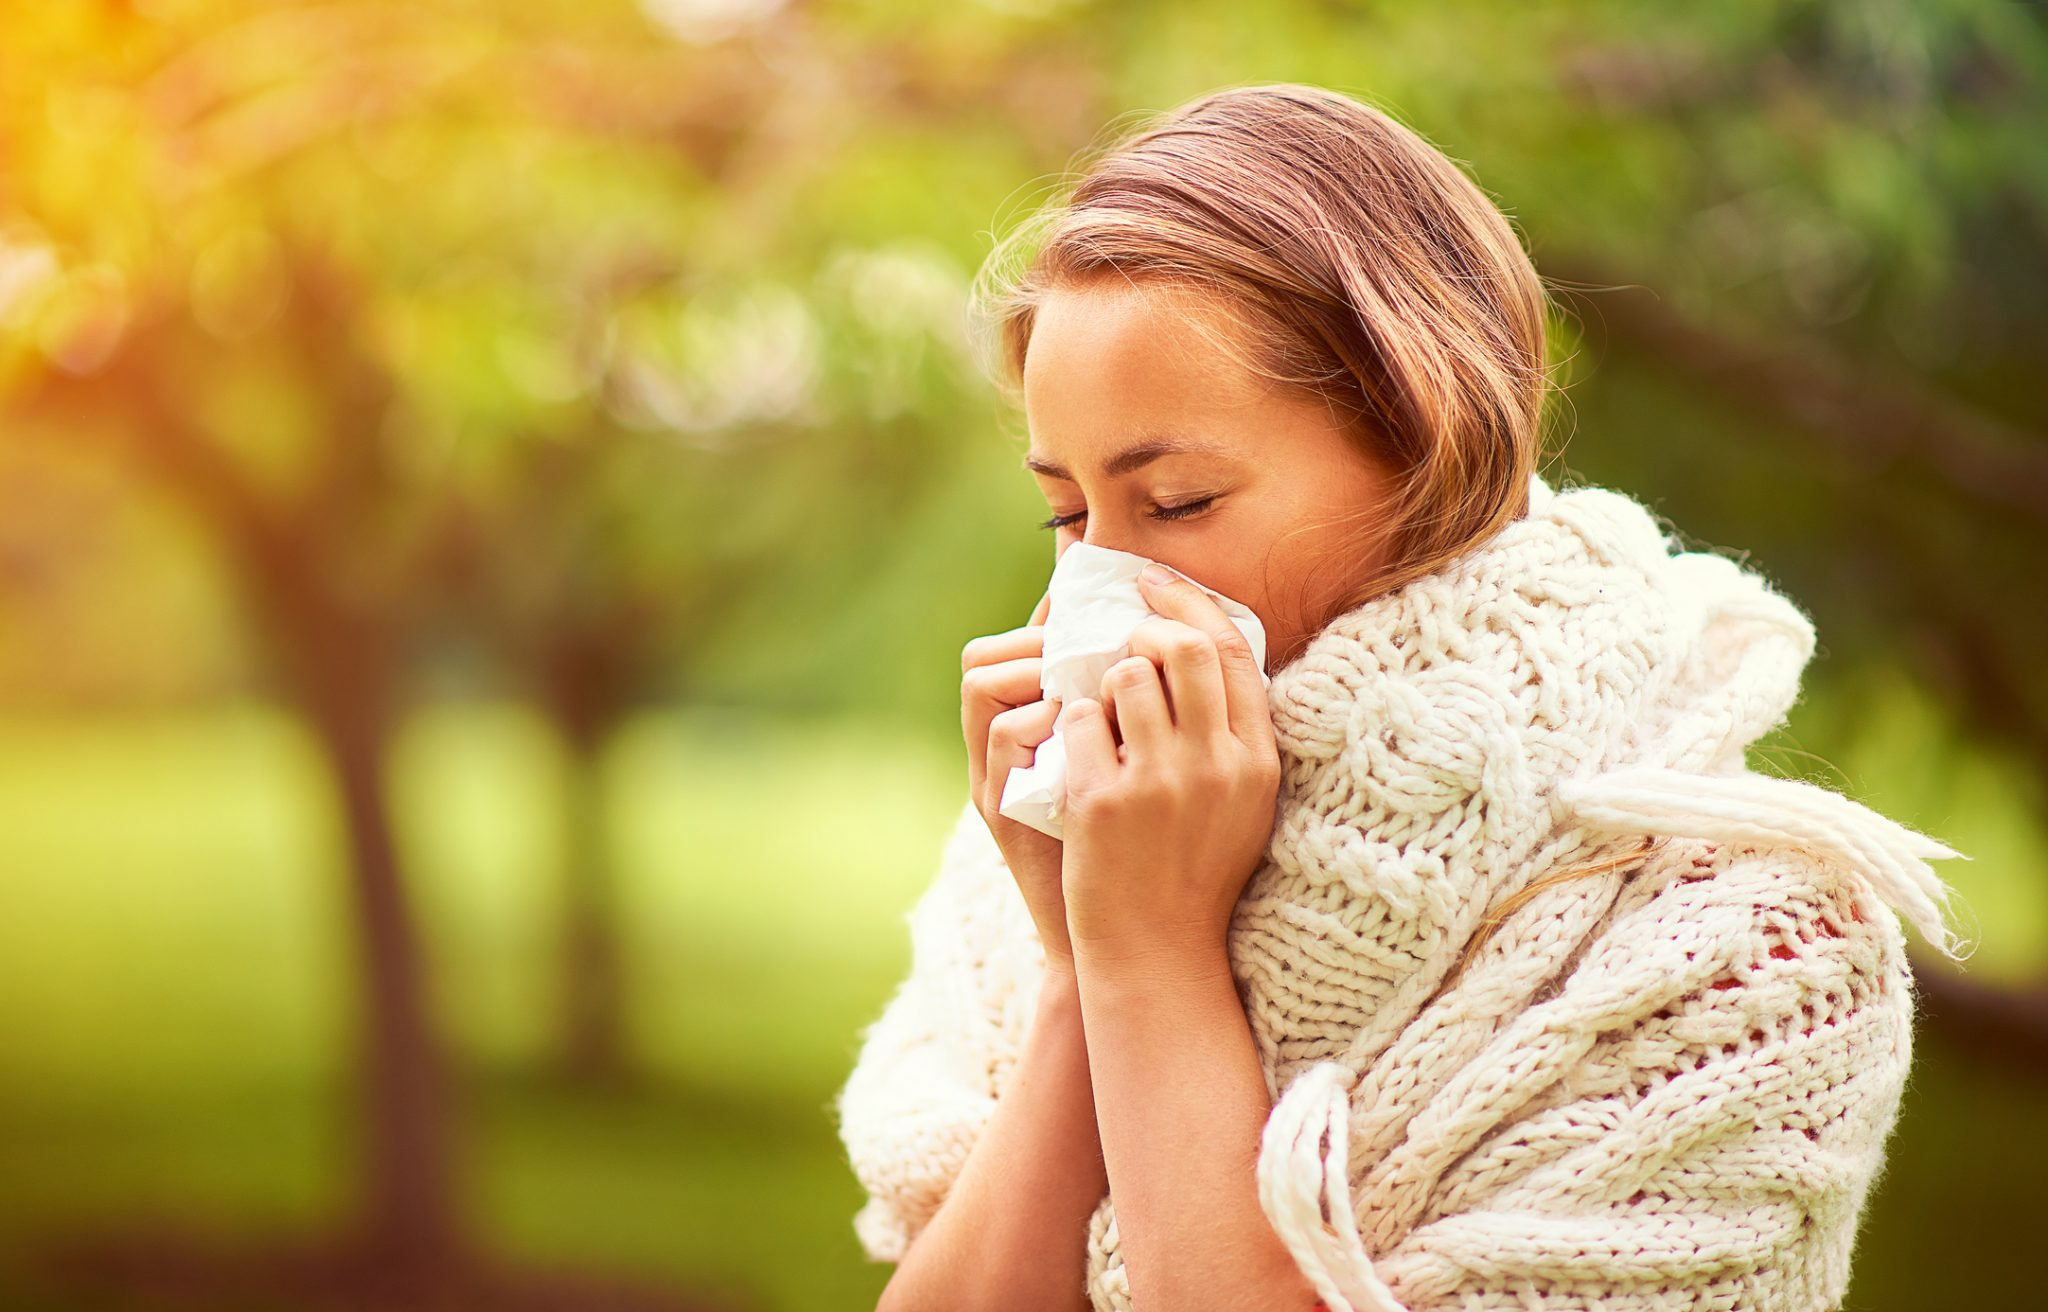 Allergies or COVID-19: How to Tell the Difference?